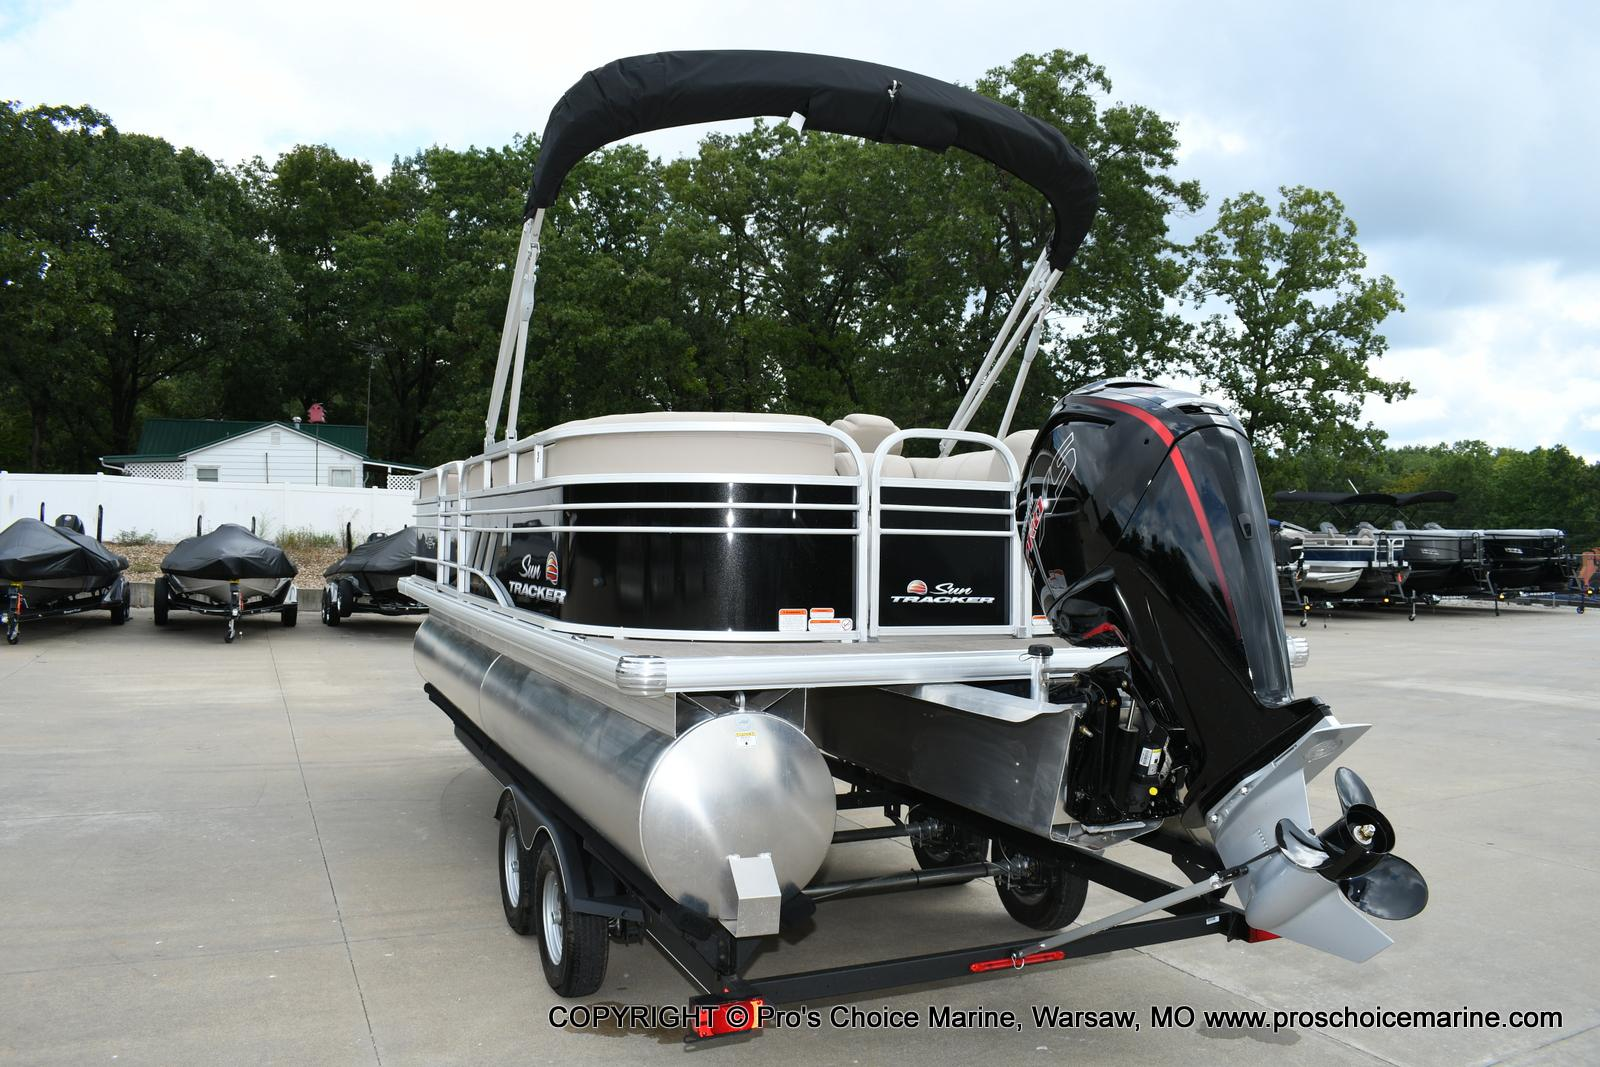 2020 Sun Tracker boat for sale, model of the boat is Party Barge 22 DLX & Image # 8 of 50